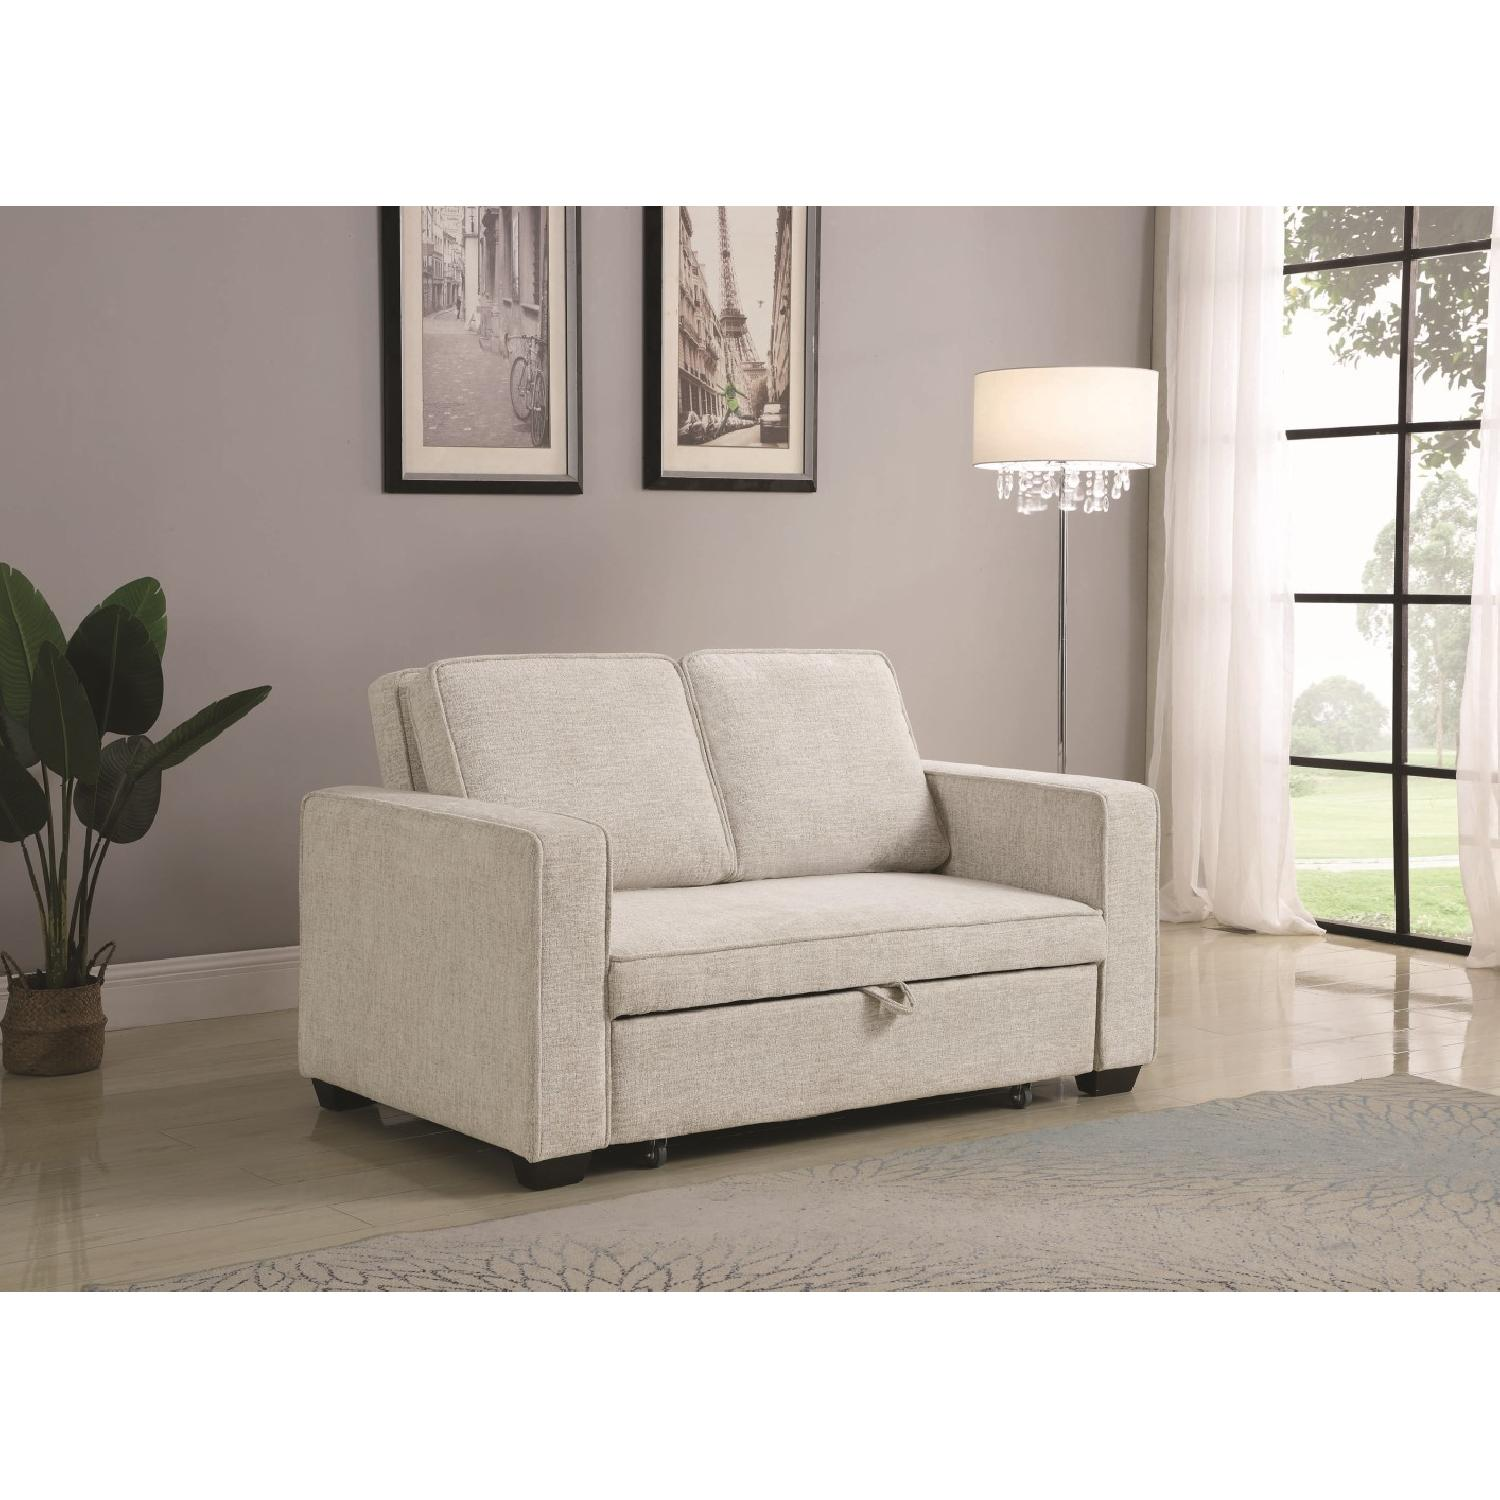 Compact Sofabed in Beige Chenille Fabric w/ Pull-Out Sleeper - image-7